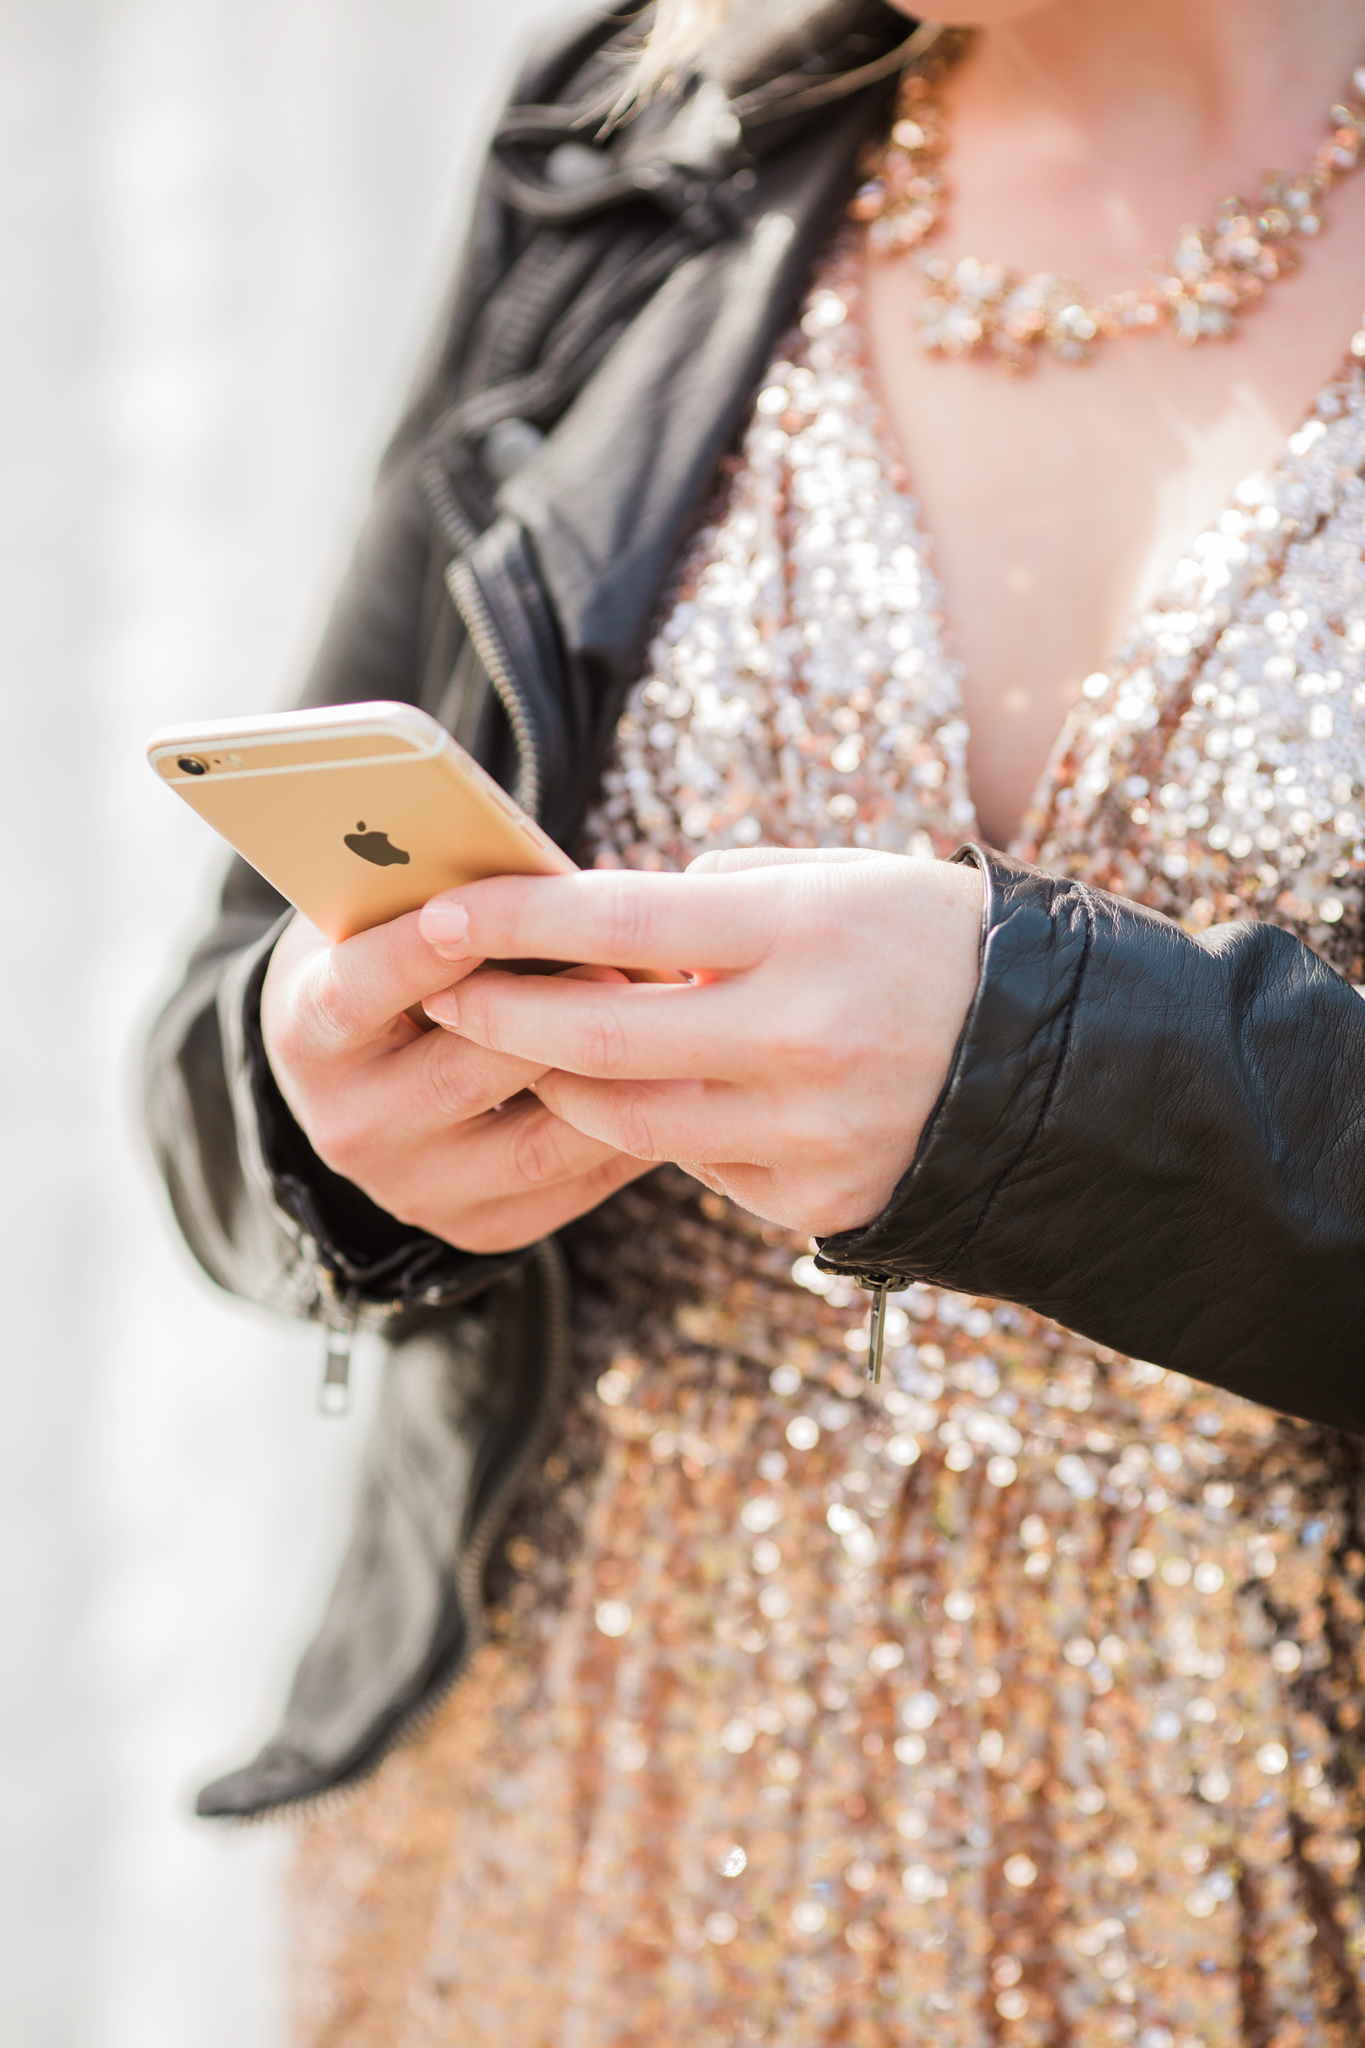 Have You Looked At Your Website on Your Phone Lately? | The Editor's Touch